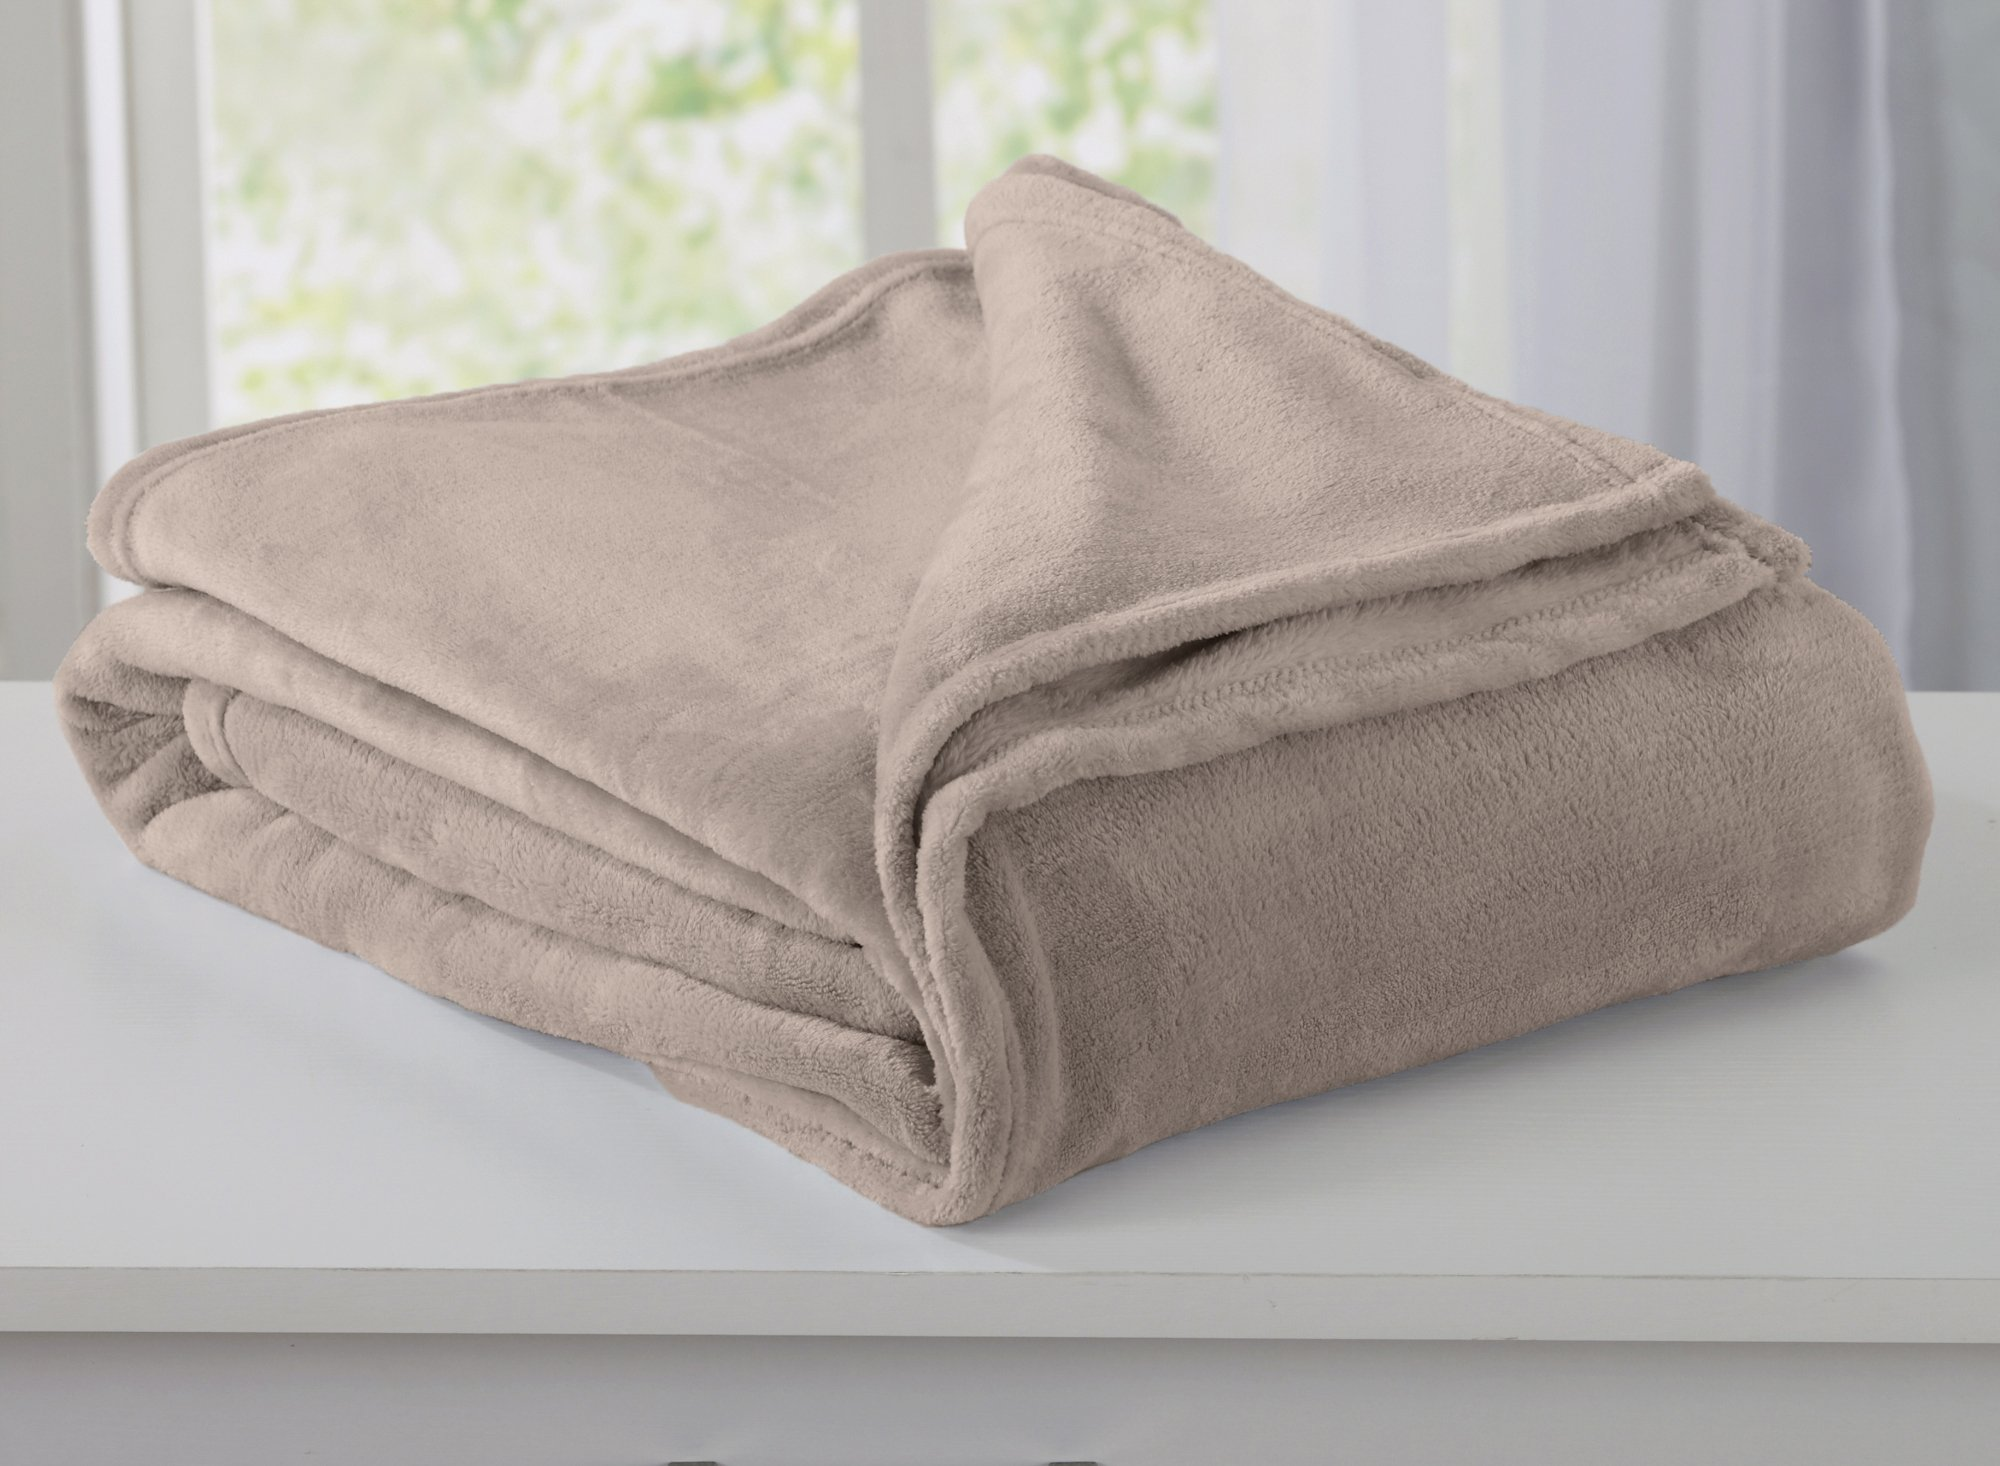 Home Fashion Designs Marlo Collection Ultra Velvet Plush All-Season Super Soft Luxury Bed Blanket. Lightweight and Warm for Ultimate Comfort. By Brand. (Full/Queen, Taupe)